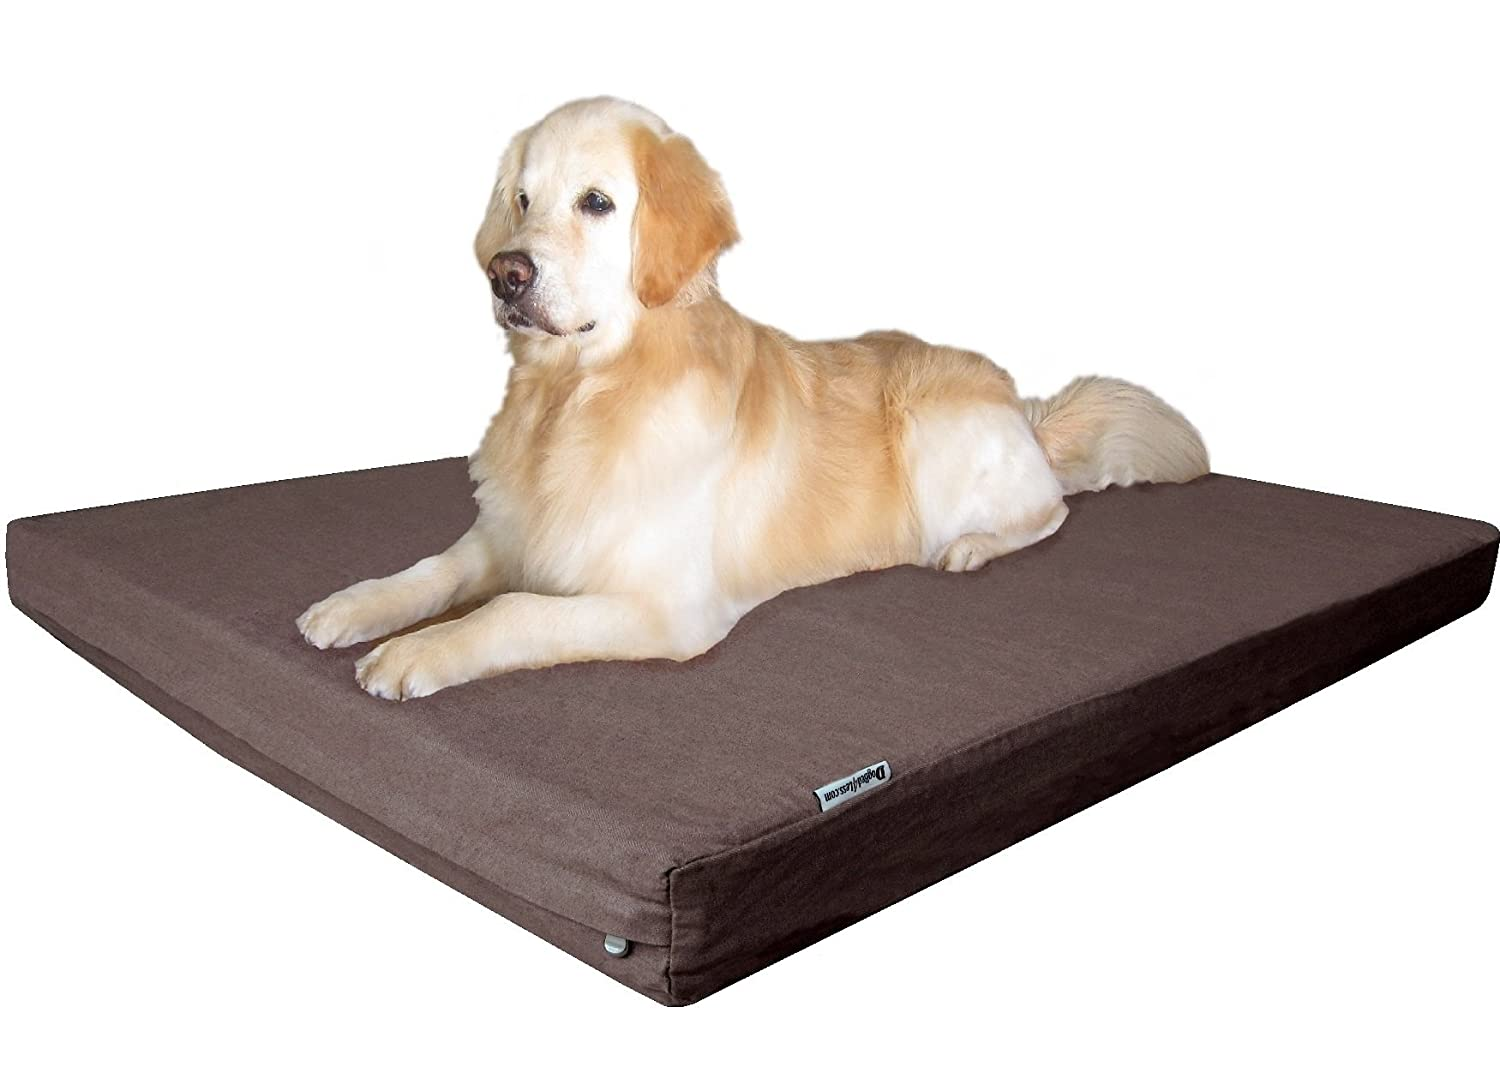 Denim in Brown JUMBO 55  Length X 47  WidthDogbed4less Waterproof Orthopedic Cooling Memory Dog Bed for Large and Extra Large Dogs, Suede Khaki color, Jumbo 55X47X4 Inches